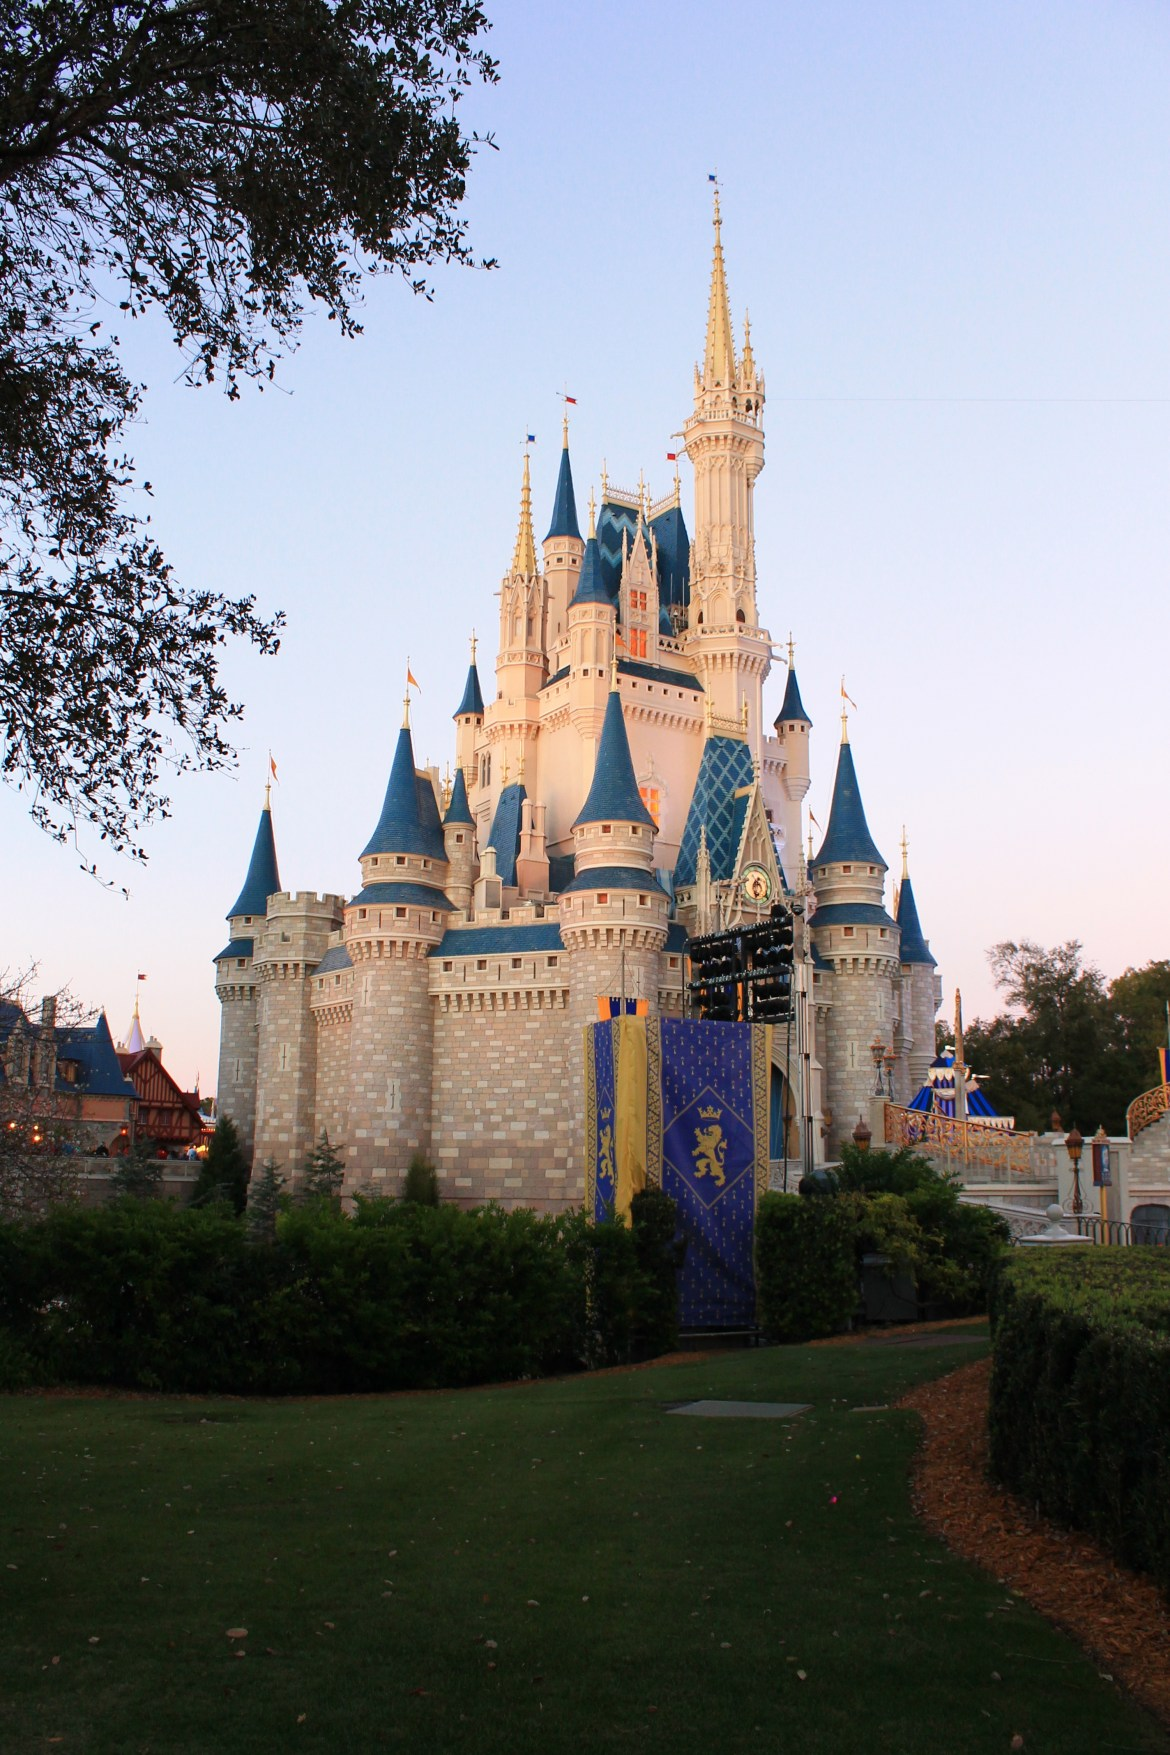 Top 3 FastPass+ Selections for Magic Kingdom